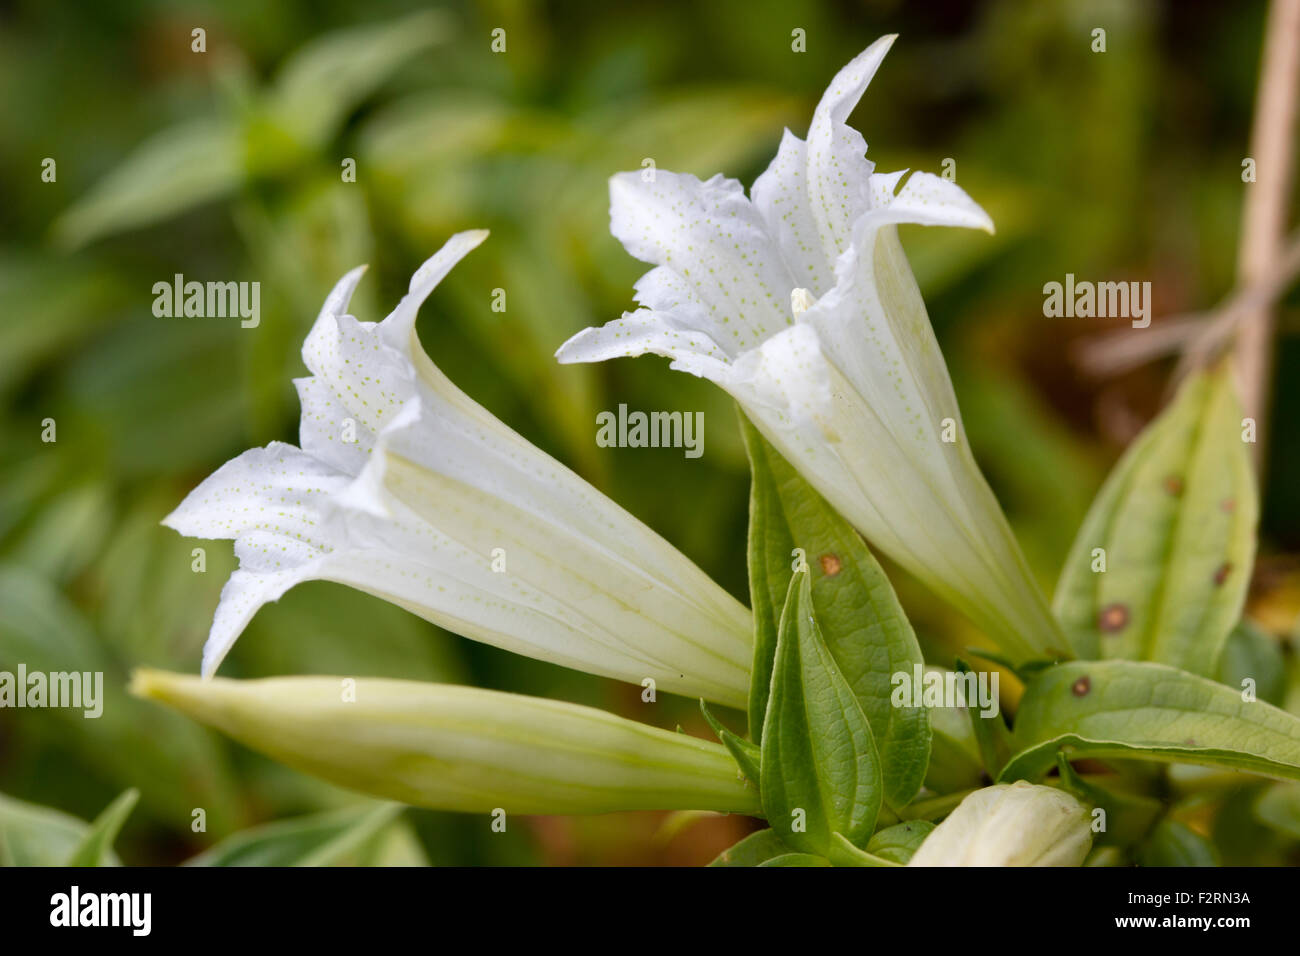 White, early autumn flowers of the perennial willow gentian, Gentiana asclepiadea 'Alba' - Stock Image